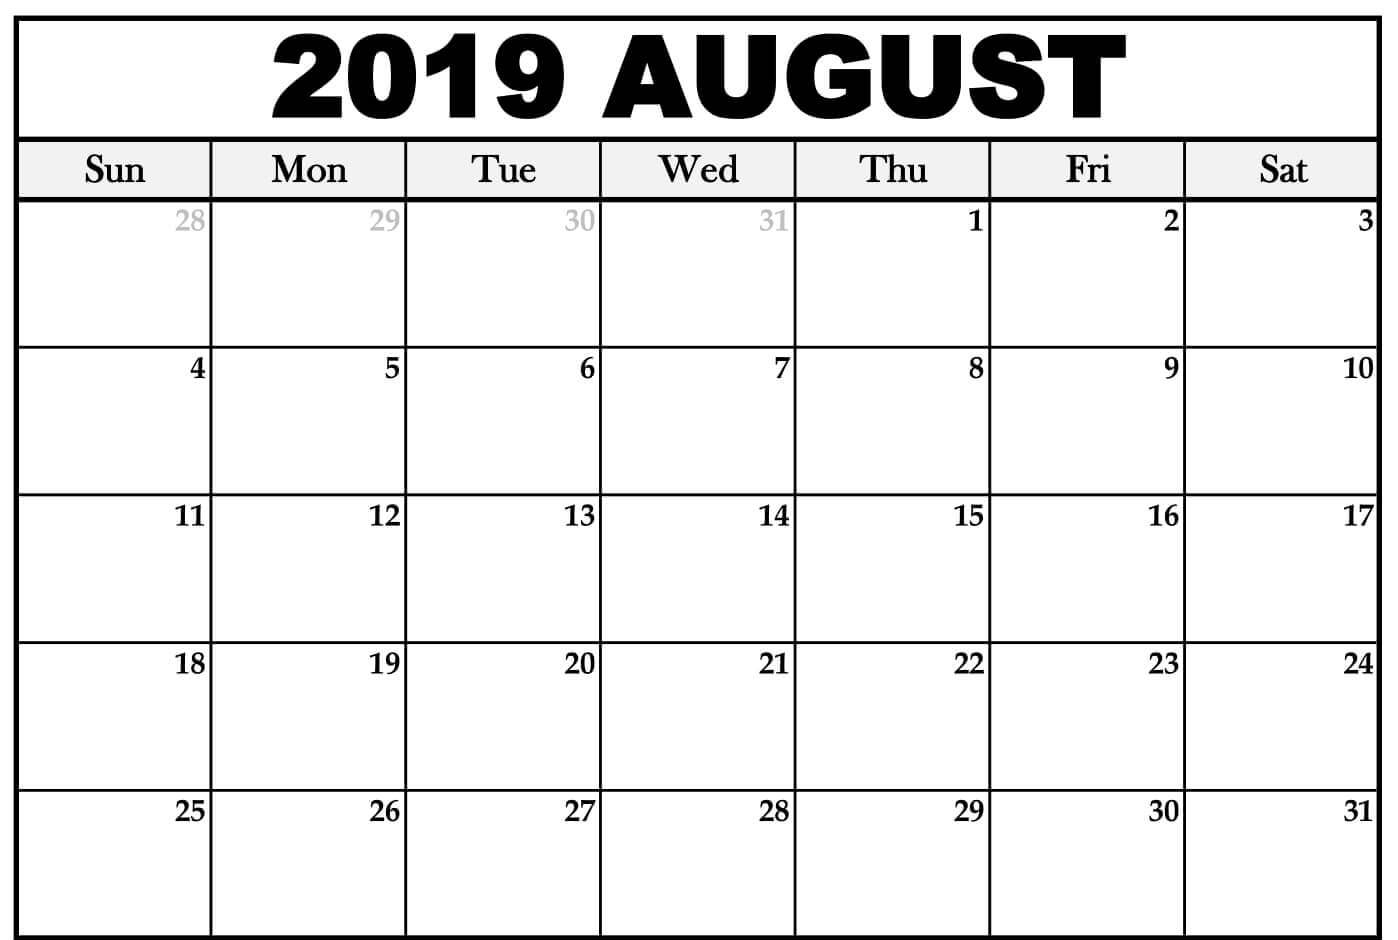 Free August 2019 Calendar Template Editable Printable Download throughout Monthly August Calander Template